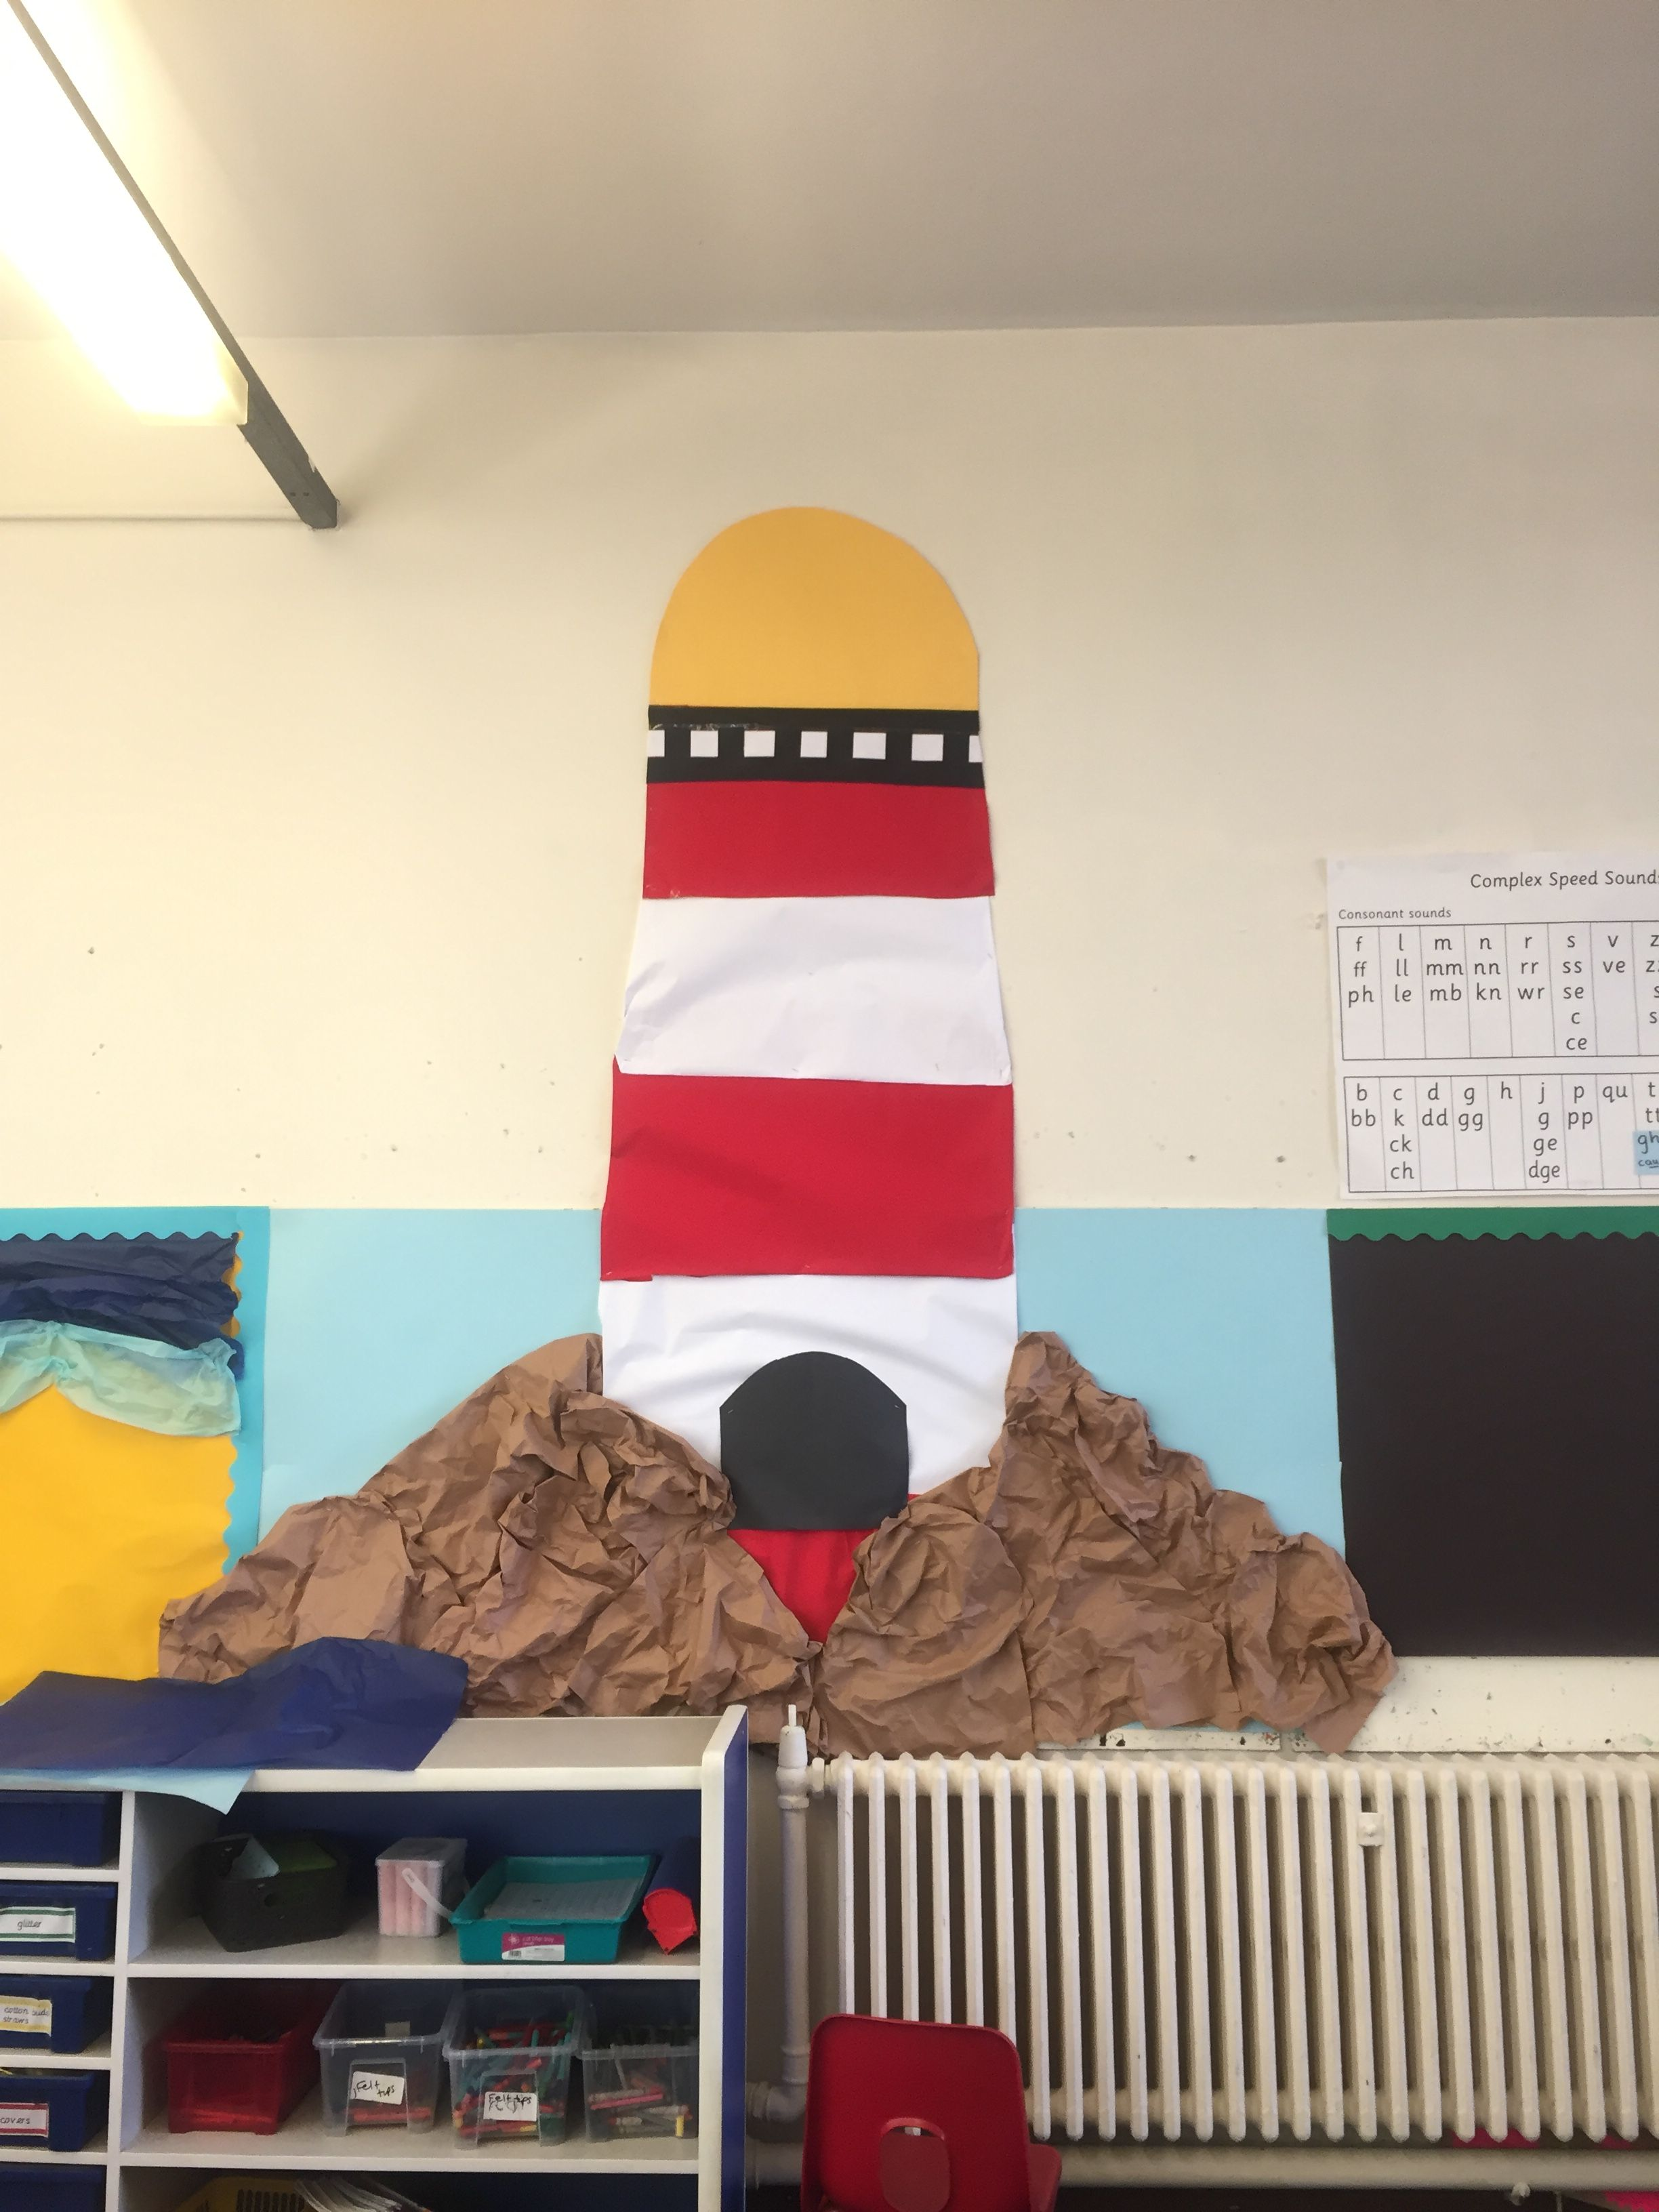 The Lighthouse Keepers Lunch Display